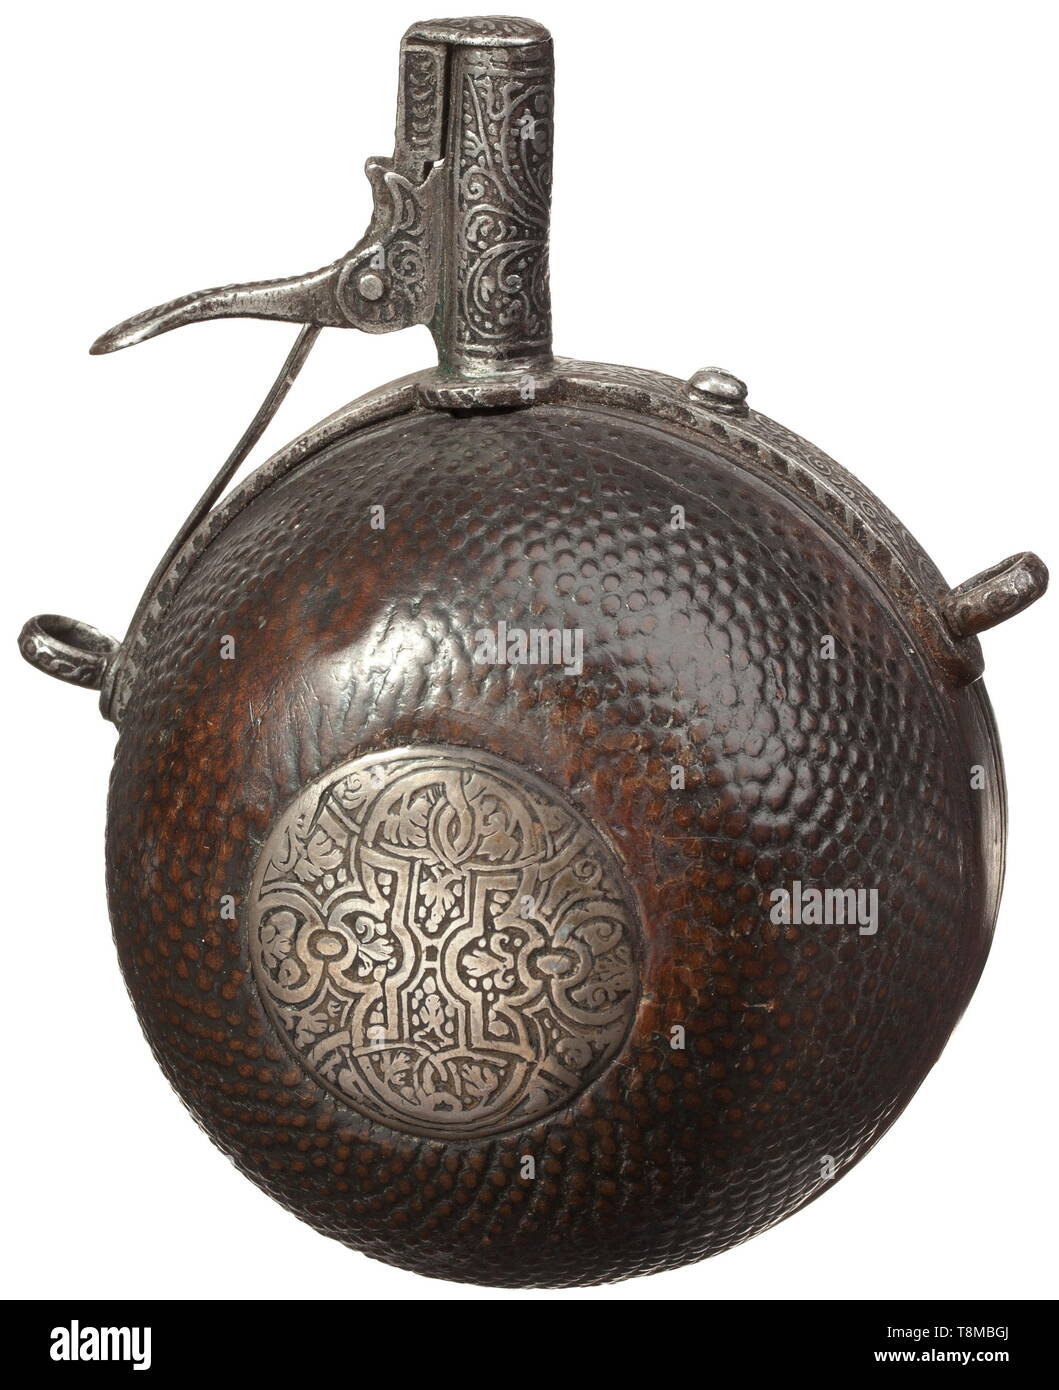 "A powder flask from the Electoral Saxon Trabanten Guard, circa 1590 Semispherical fruitwood body, nubby on the front side, with ornamentally etched, inlaid silver plate. The iron mounting with spring-loaded spout florally etched in the typical Saxon style. On the reverse side an old carved monogram ""AME""(?). Diameter 8 cm. historic, historical, handgun, firearm, fire arm, firearms, fire arms, gun, guns, hand weapon, hand weapons, object, objects, stills, 16th century, Additional-Rights-Clearance-Info-Not-Available Stock Photo"